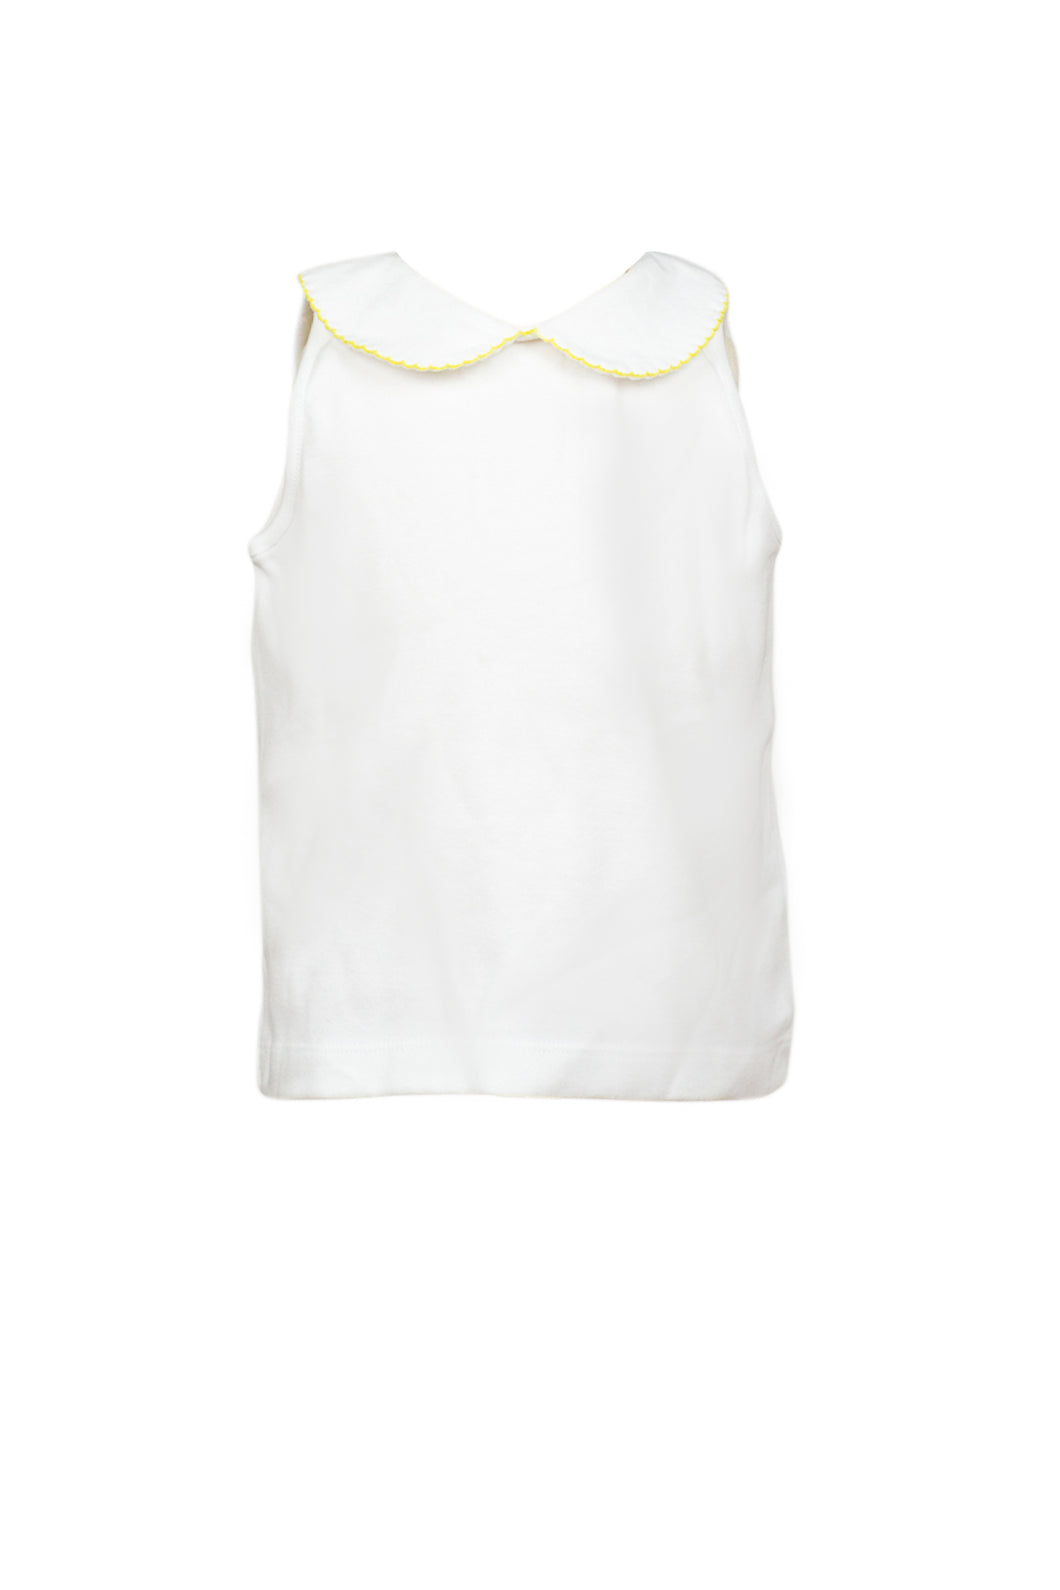 Proper Sleeveless Knit Shirt - Yellow